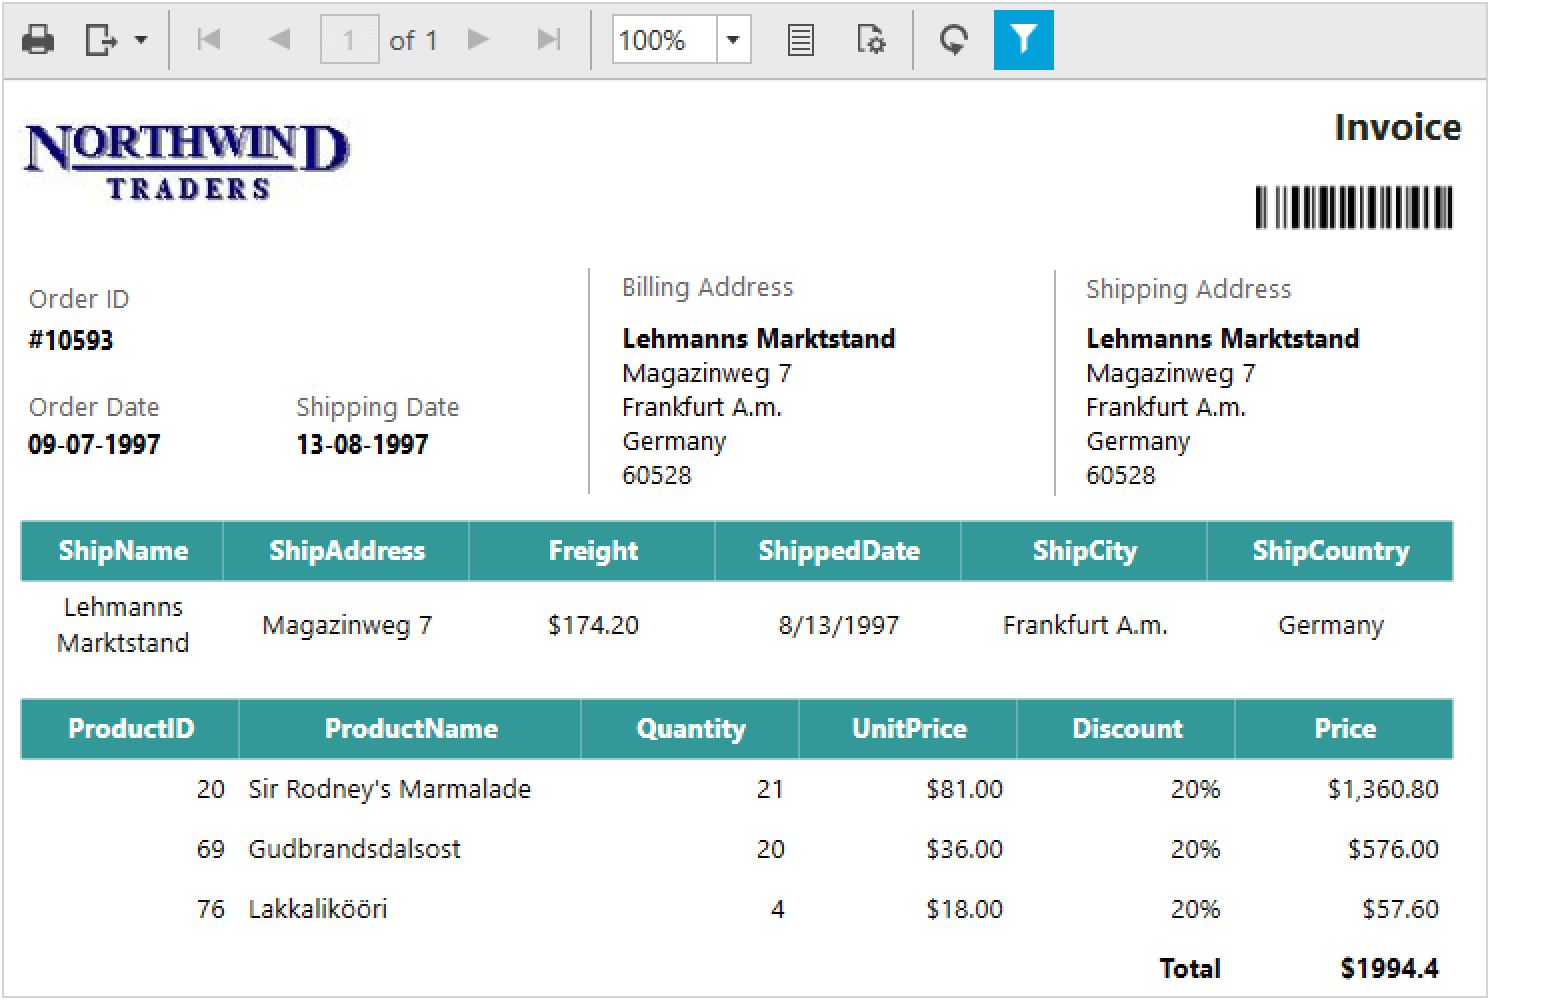 Displays RDL report with custom report items